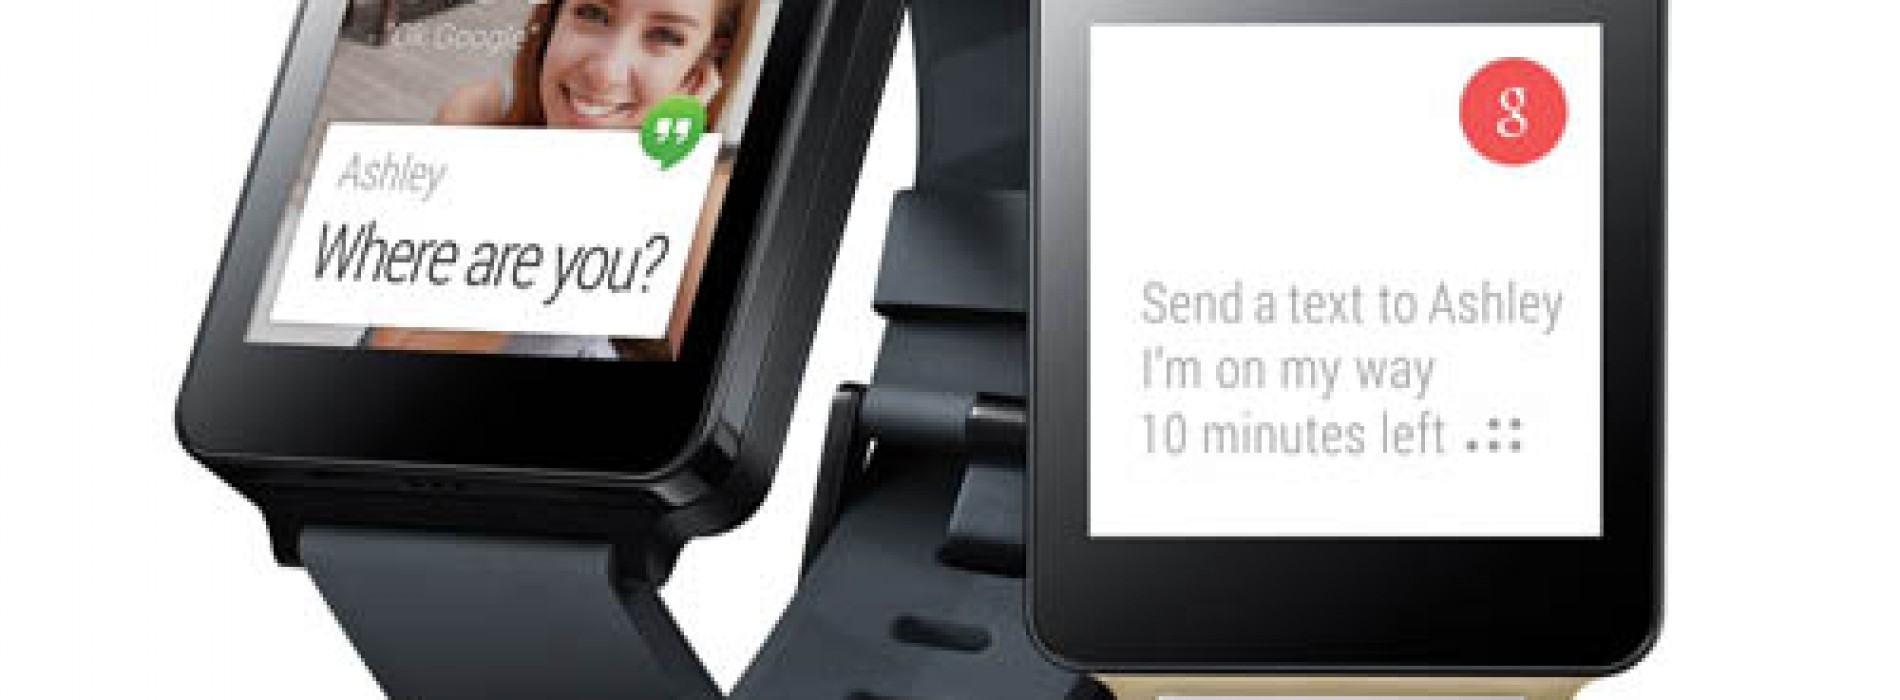 LG to fix G Watch corroding problem